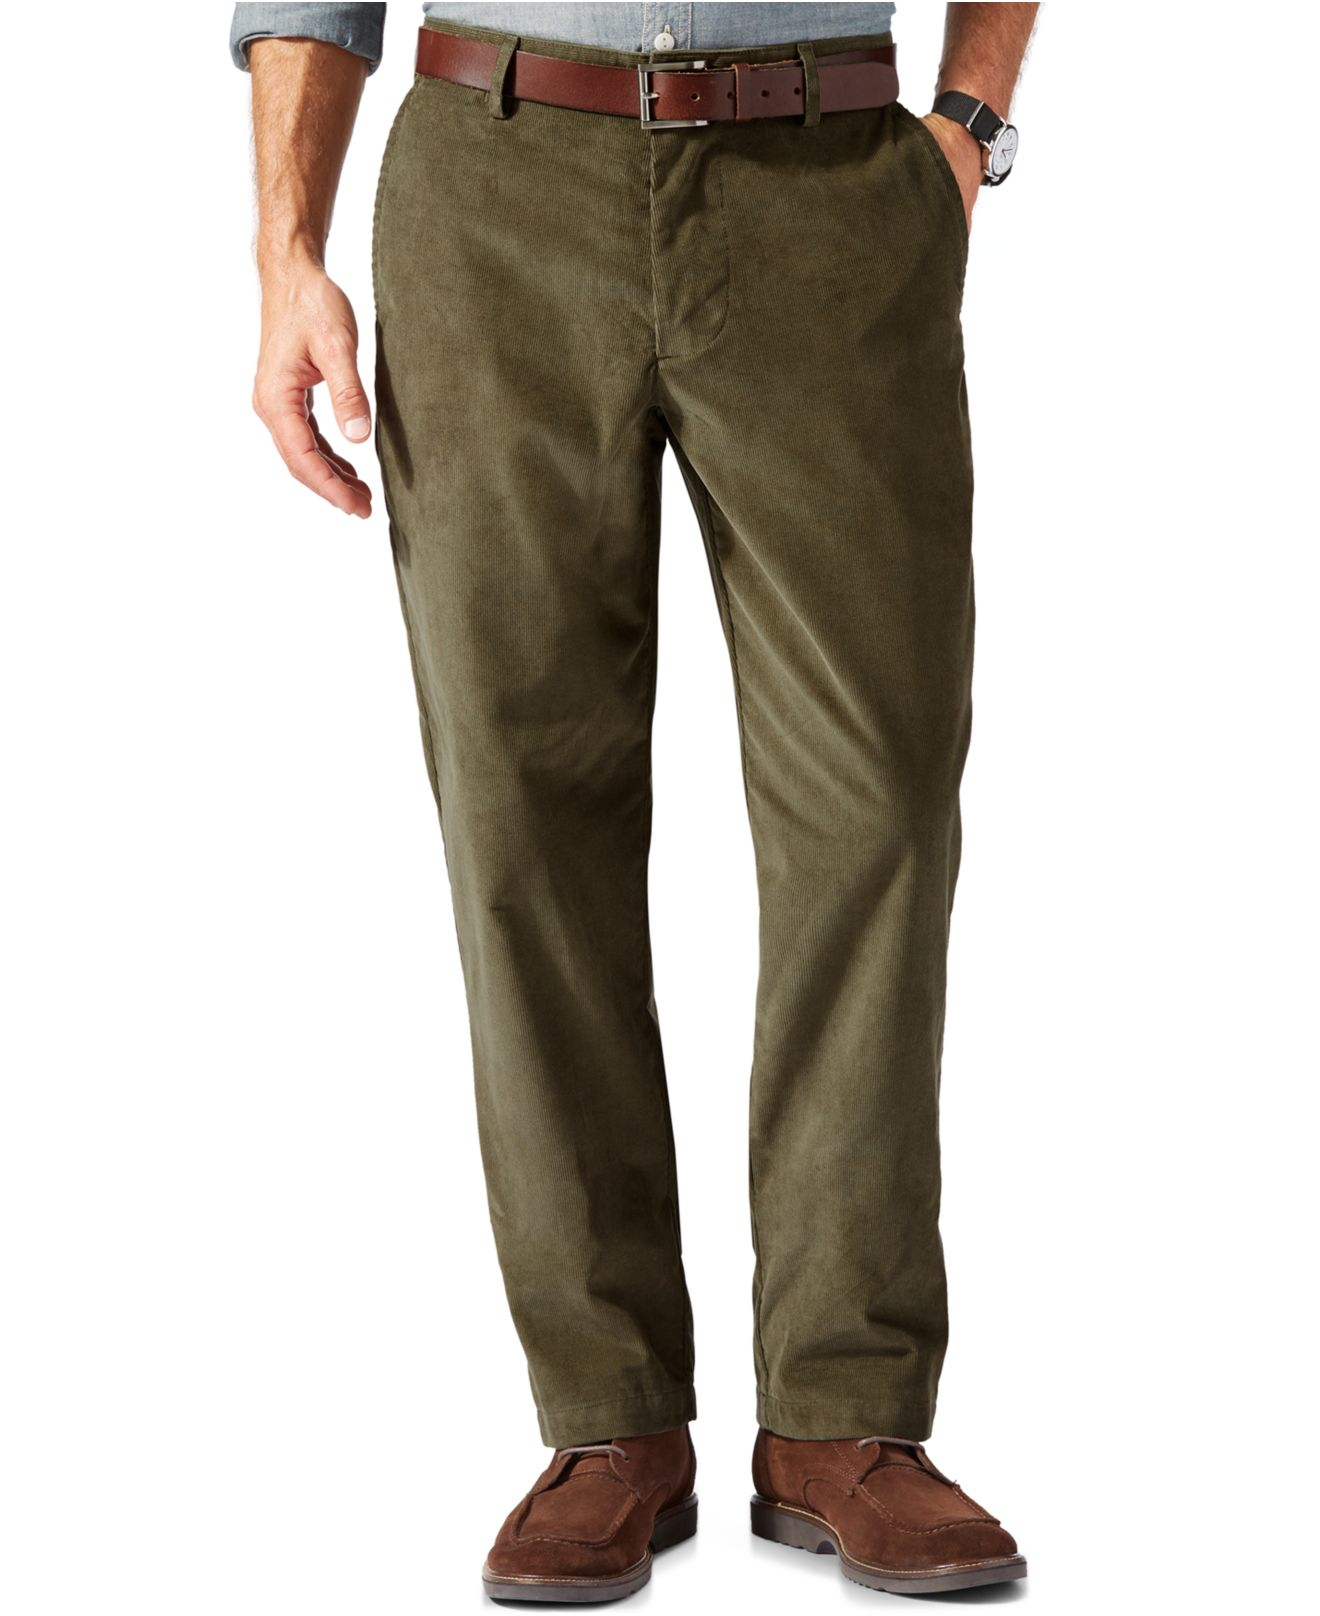 Buy Haggar Men's Life Khaki Corduroy Plain-Front Chino Pant and other Casual at bonjournal.tk Our wide selection is elegible for free shipping and free returns.4/5().